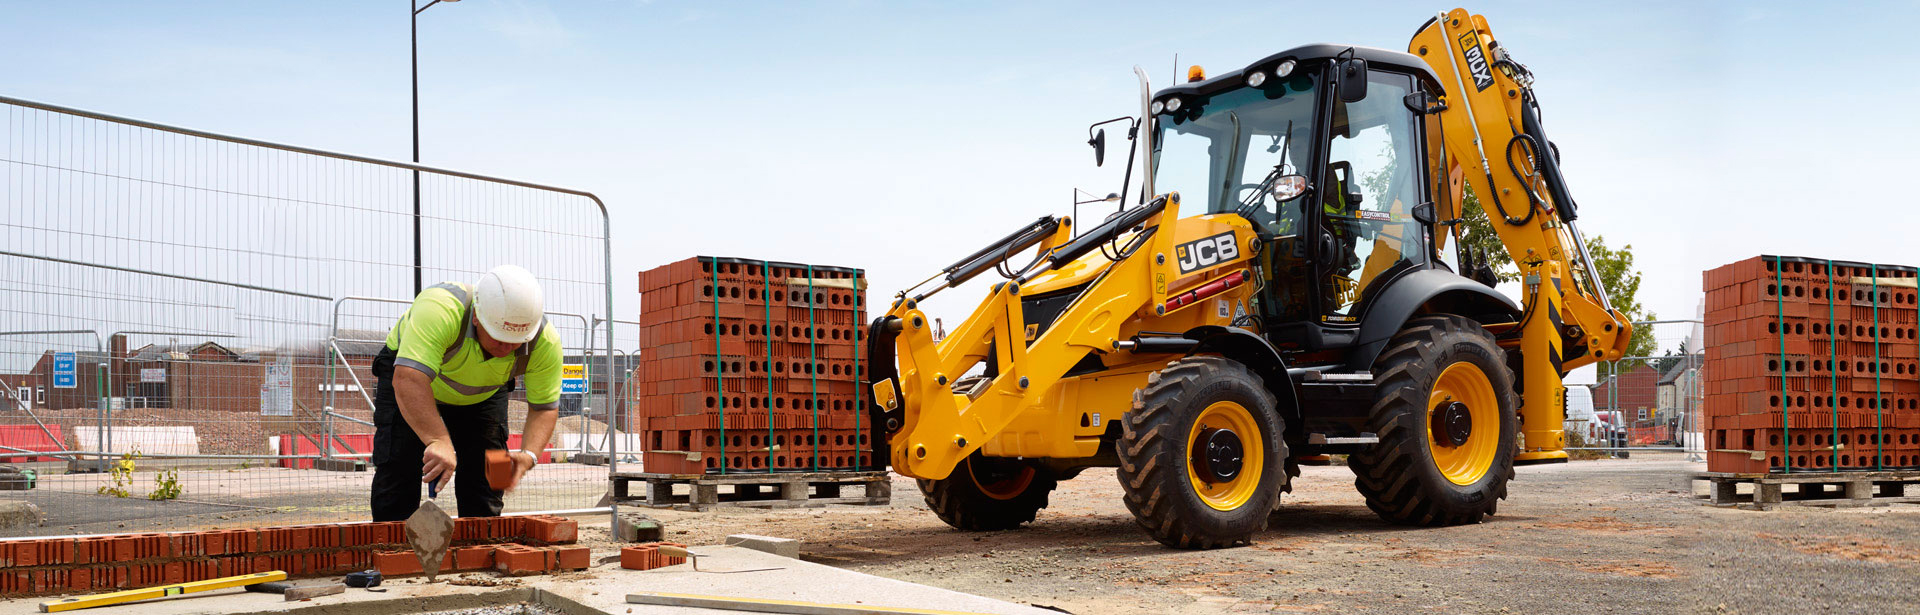 JCB BACKHOE LOADERS Dubai